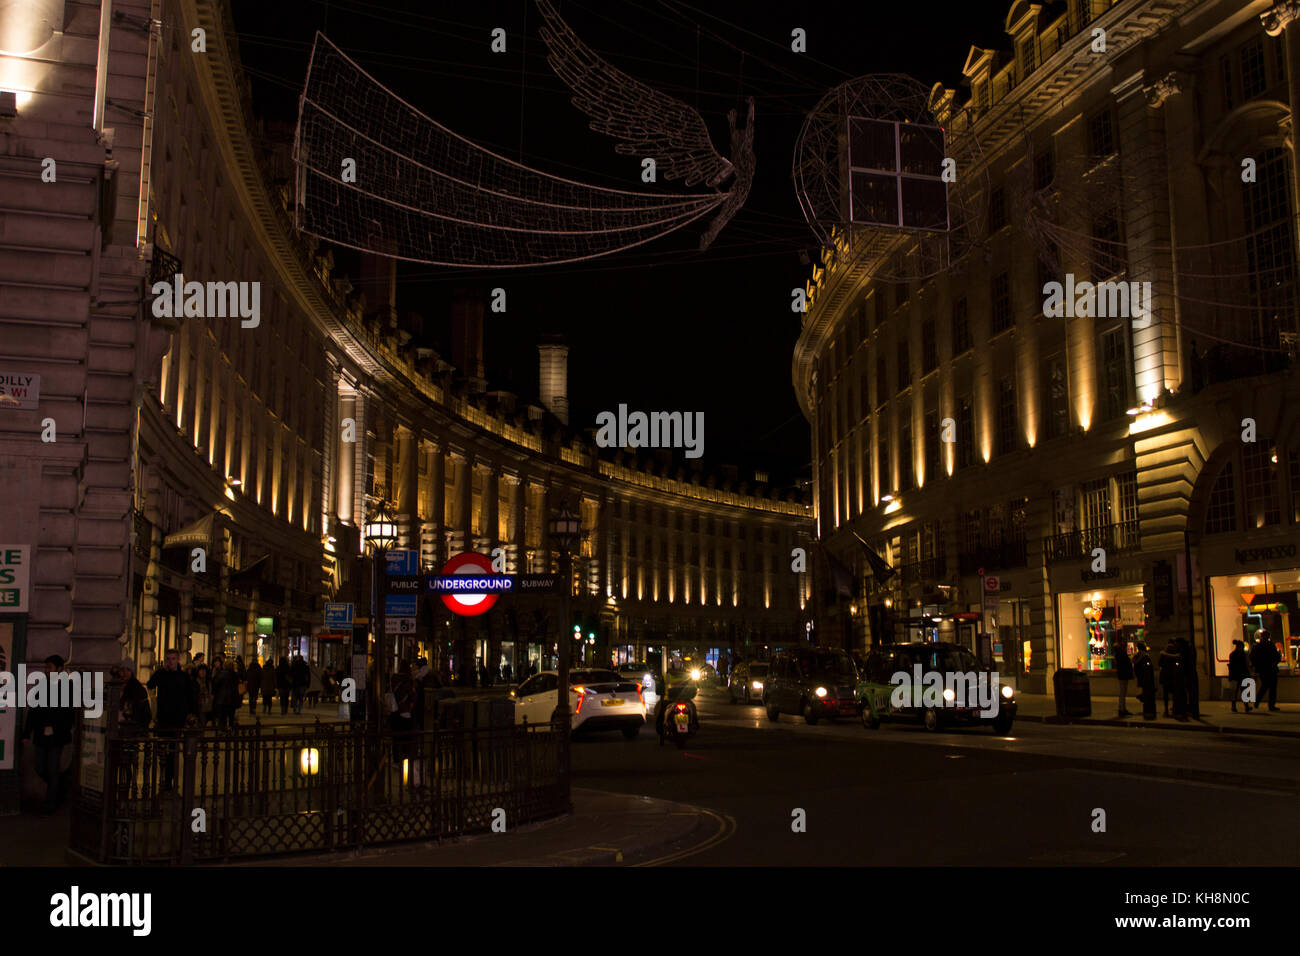 Streets of London - Stock Image